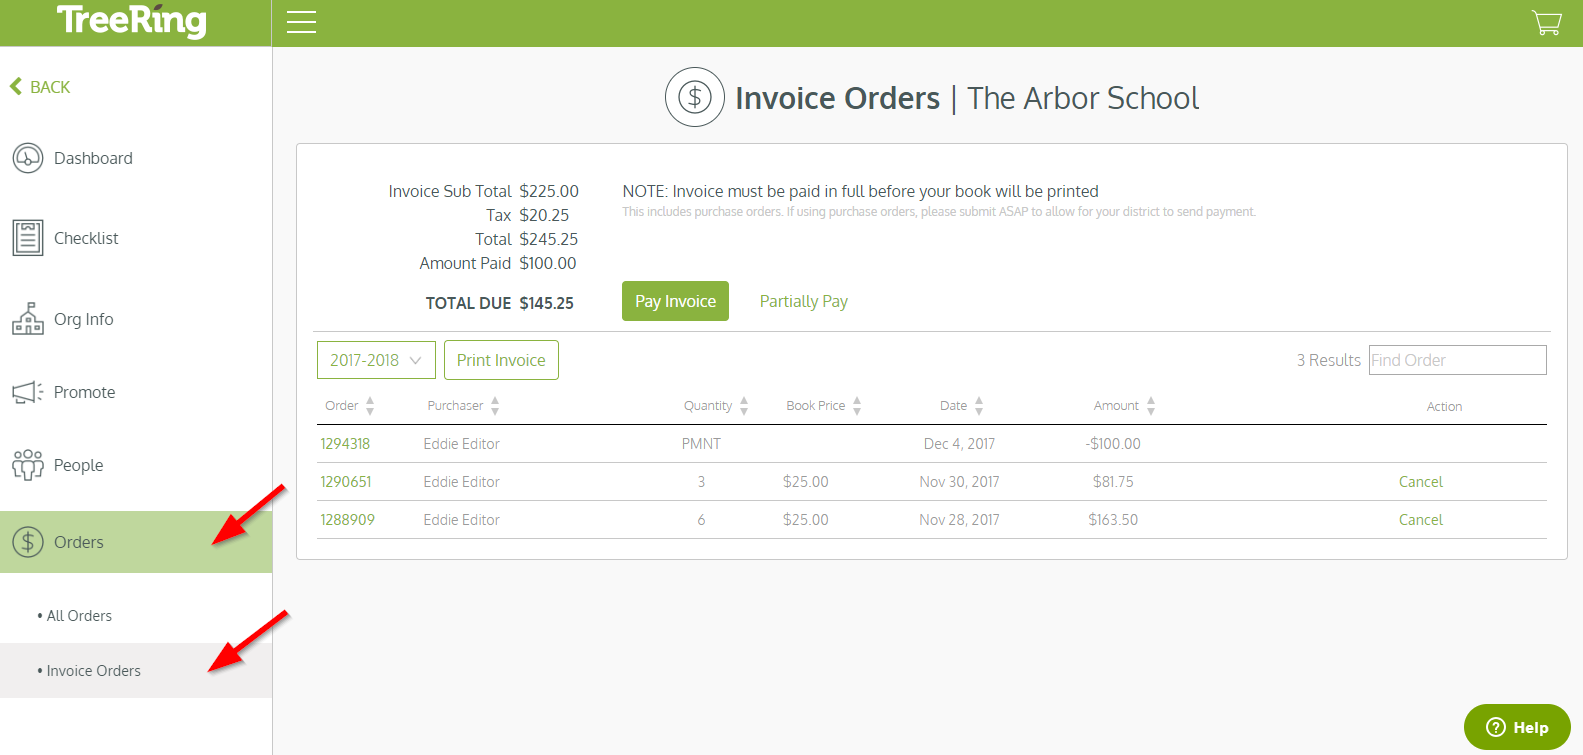 Order_-_School_Purchasing_All_Books_-_Orders_and_Invoice_Orders.png